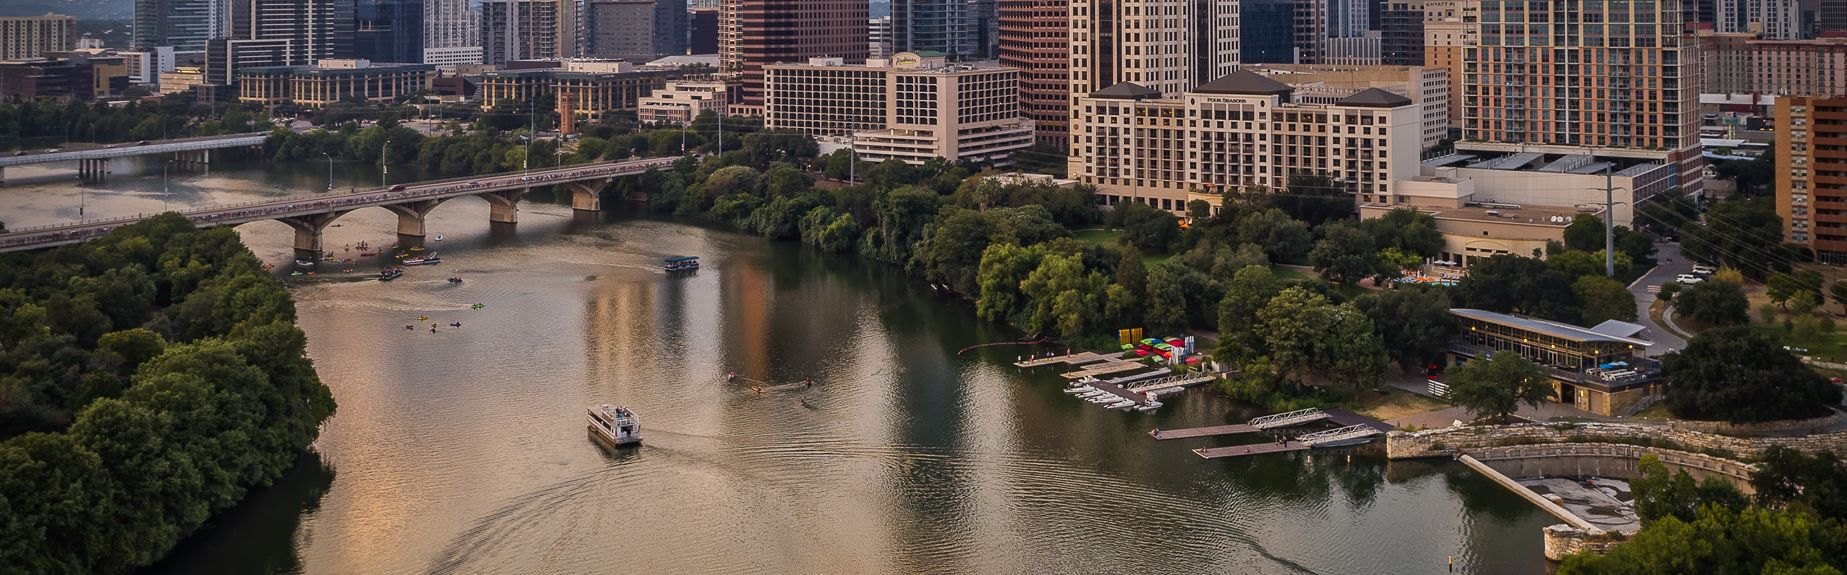 Greater South River City, Austin, Texas, Estados Unidos